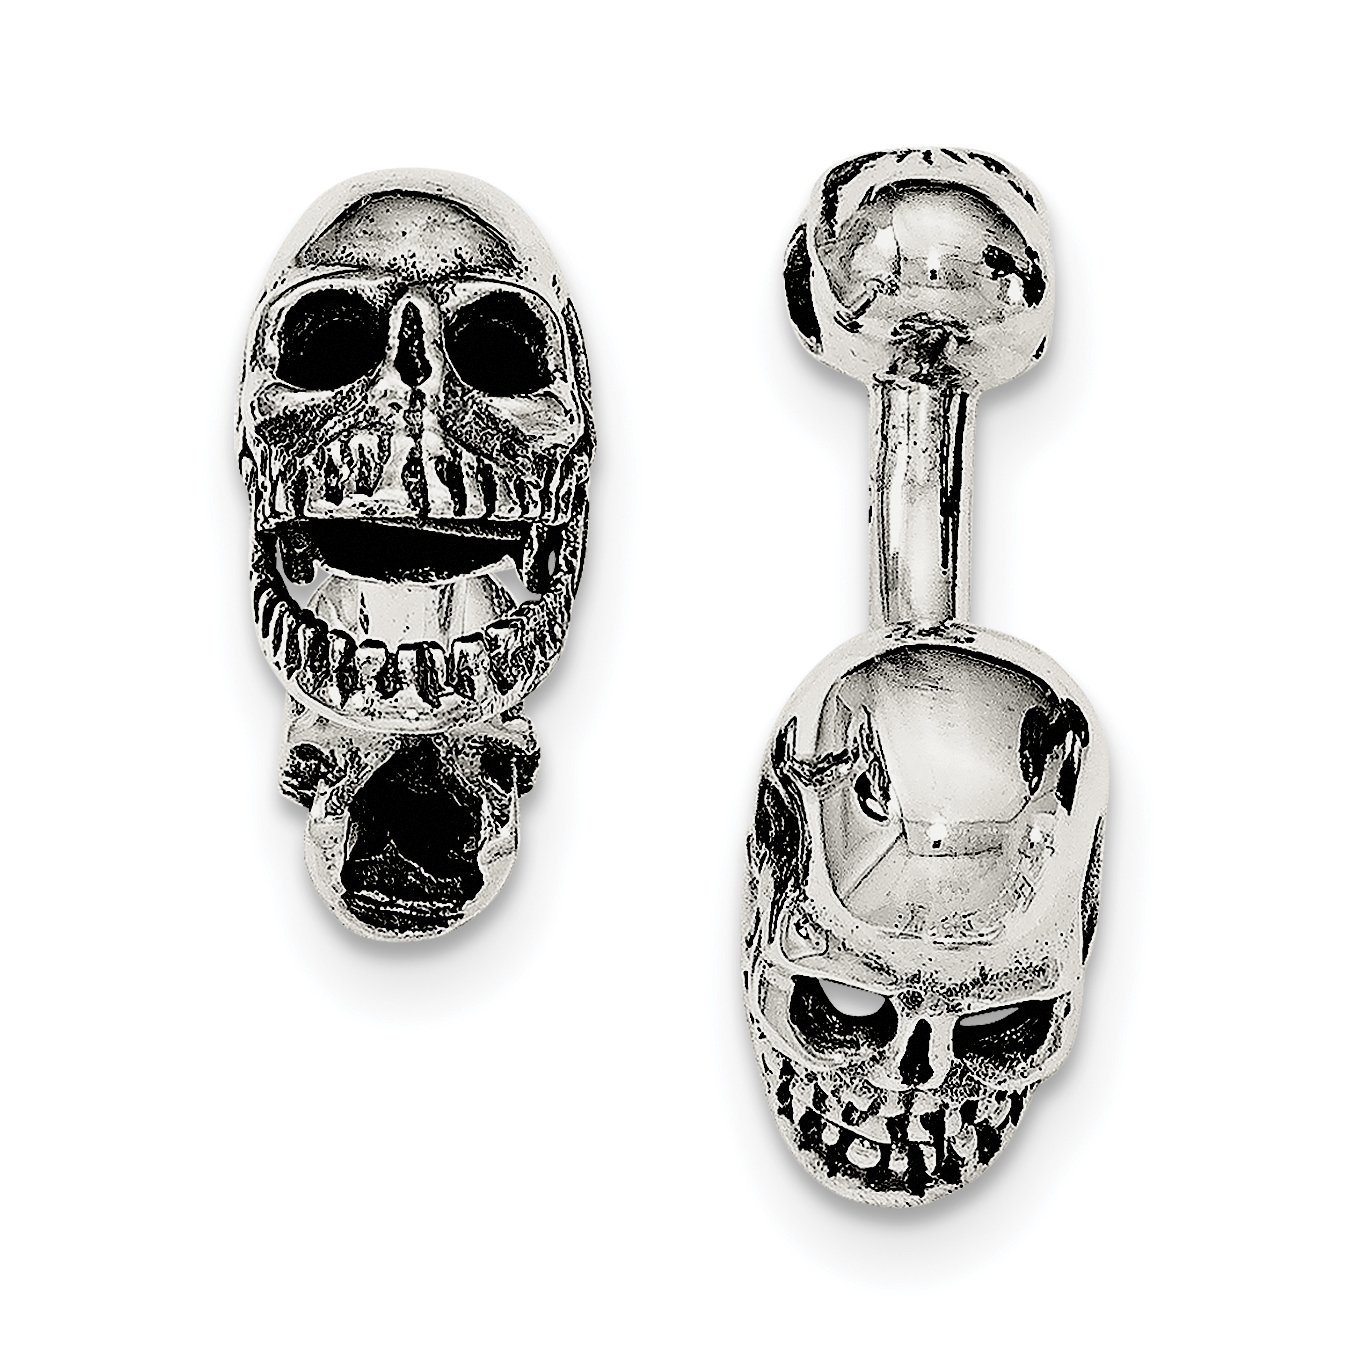 ICE CARATS 925 Sterling Silver Moveable Skull Cuff Links Mens Cufflinks Link Fine Jewelry Dad Mens Gift Set